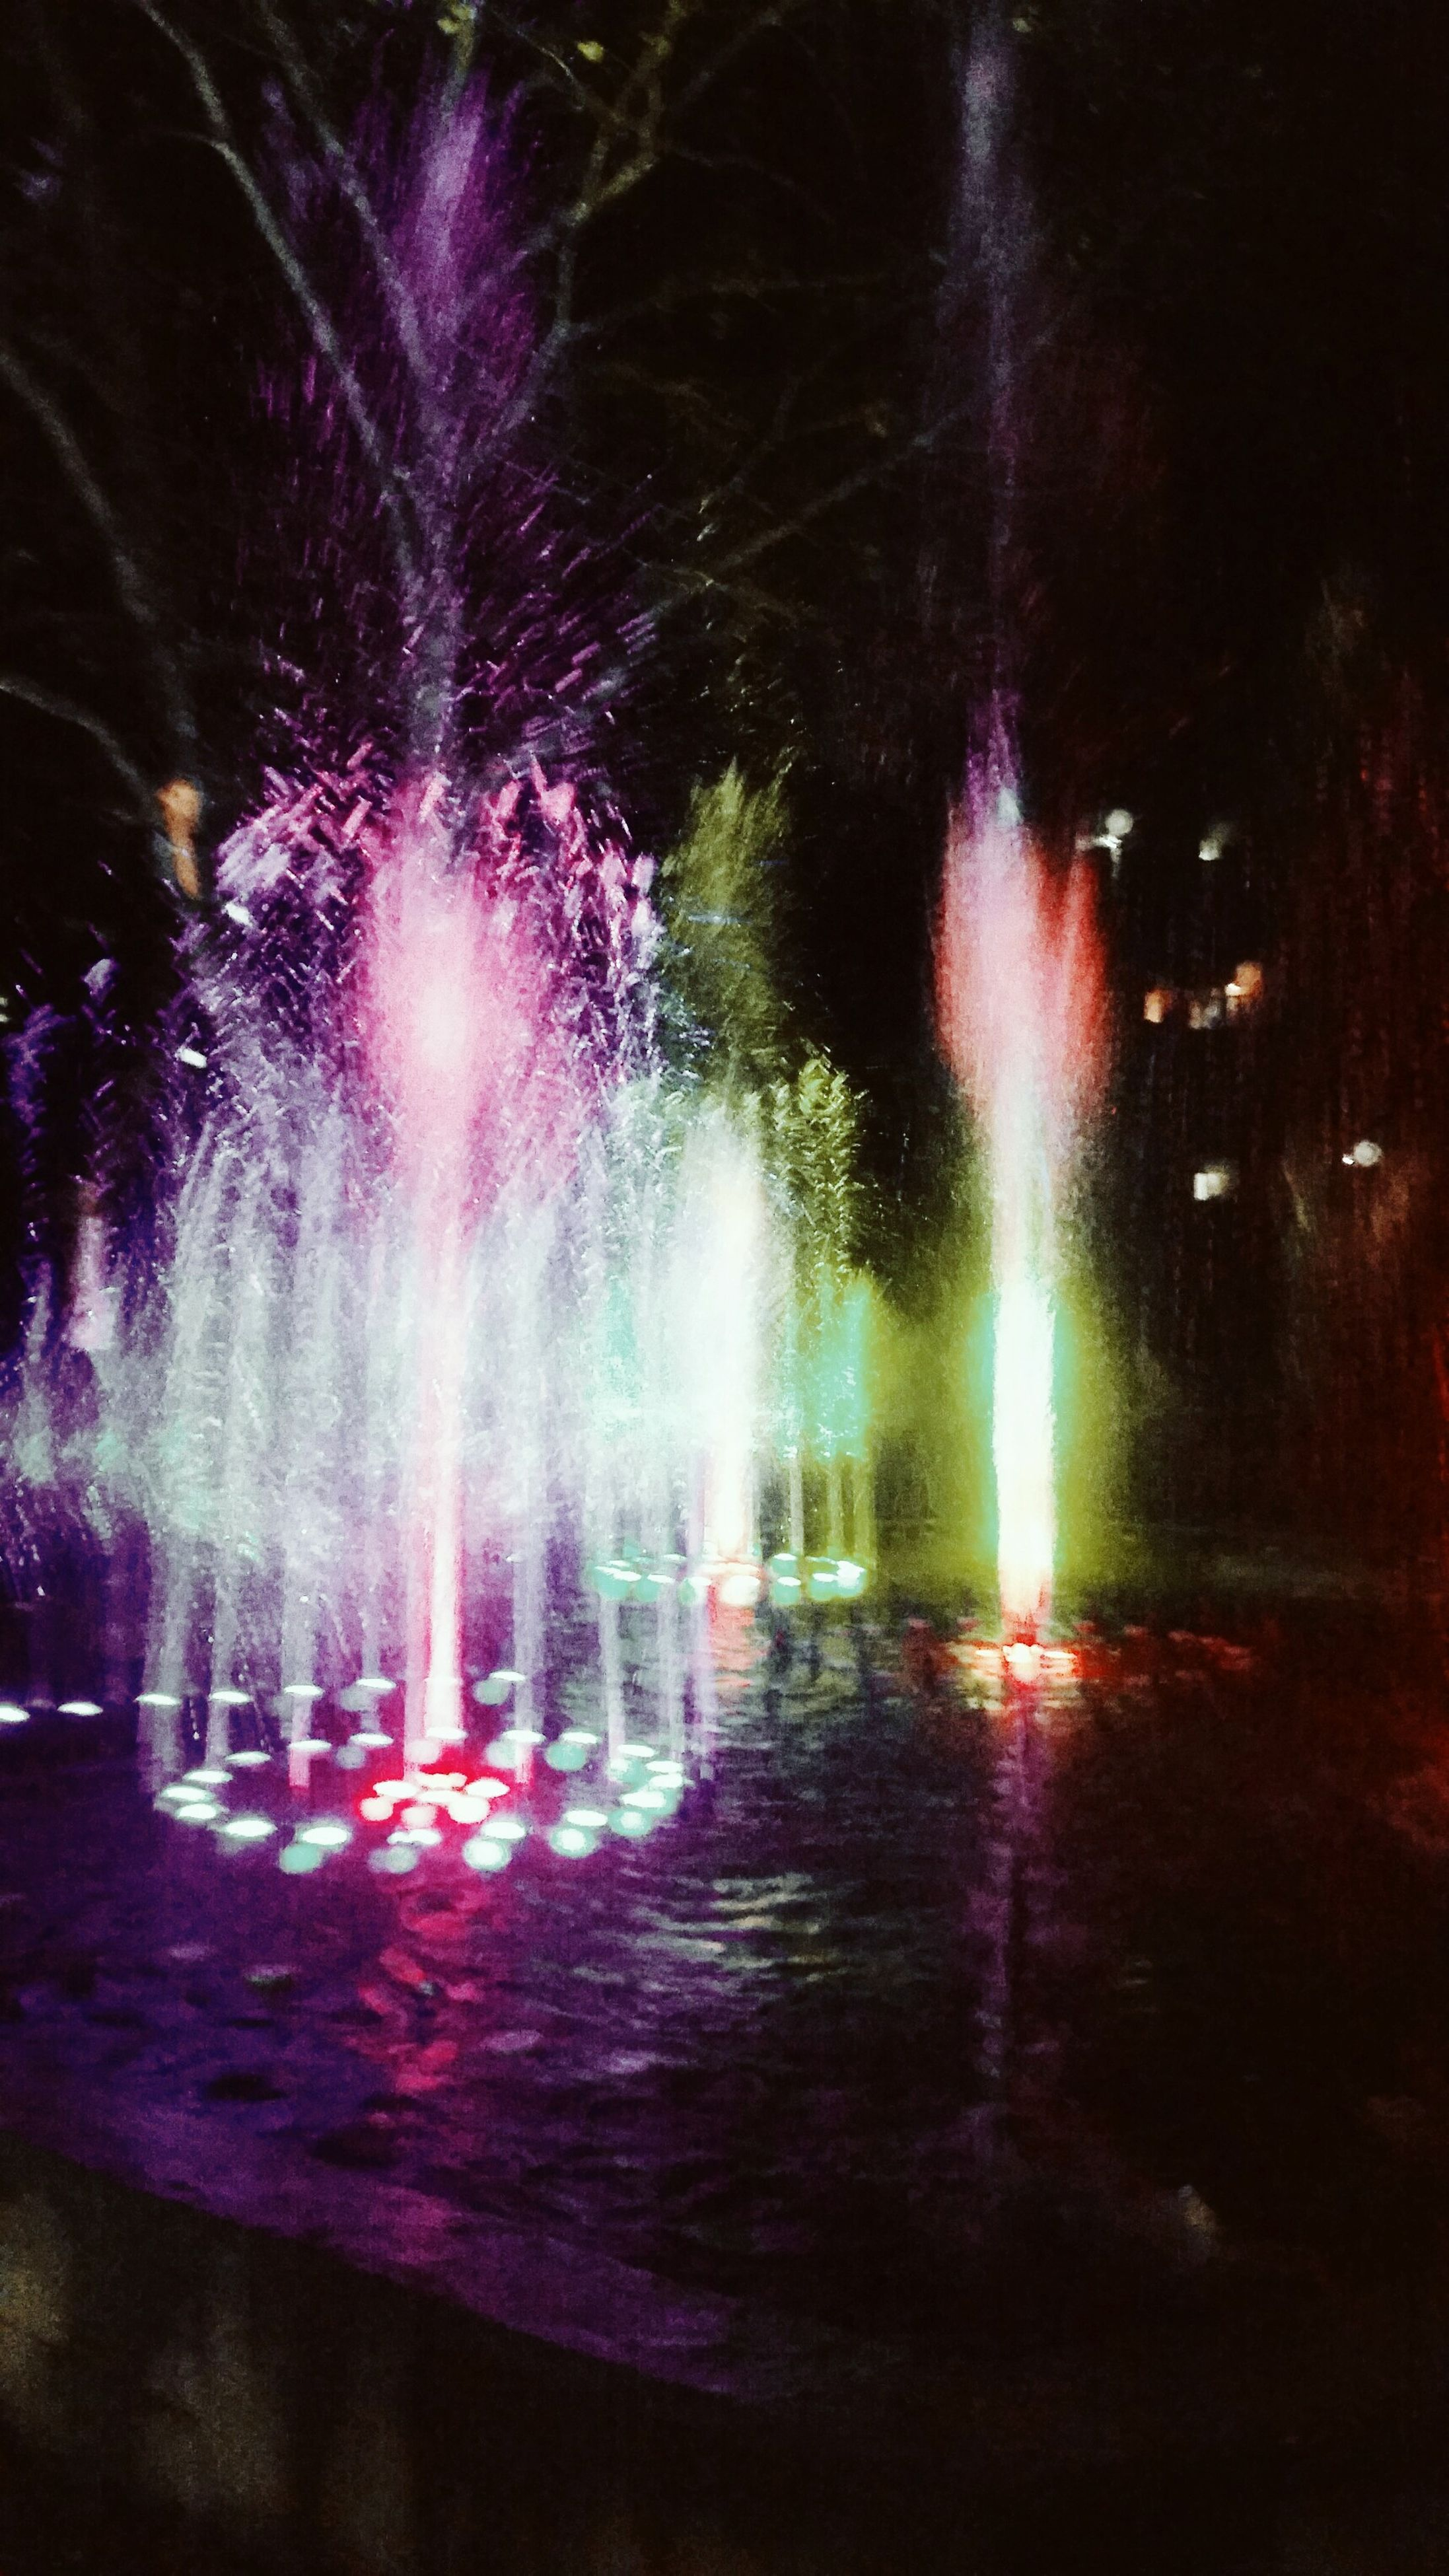 night, illuminated, long exposure, motion, glowing, water, reflection, multi colored, blurred motion, waterfront, tree, firework display, celebration, fountain, outdoors, light - natural phenomenon, no people, exploding, sky, light